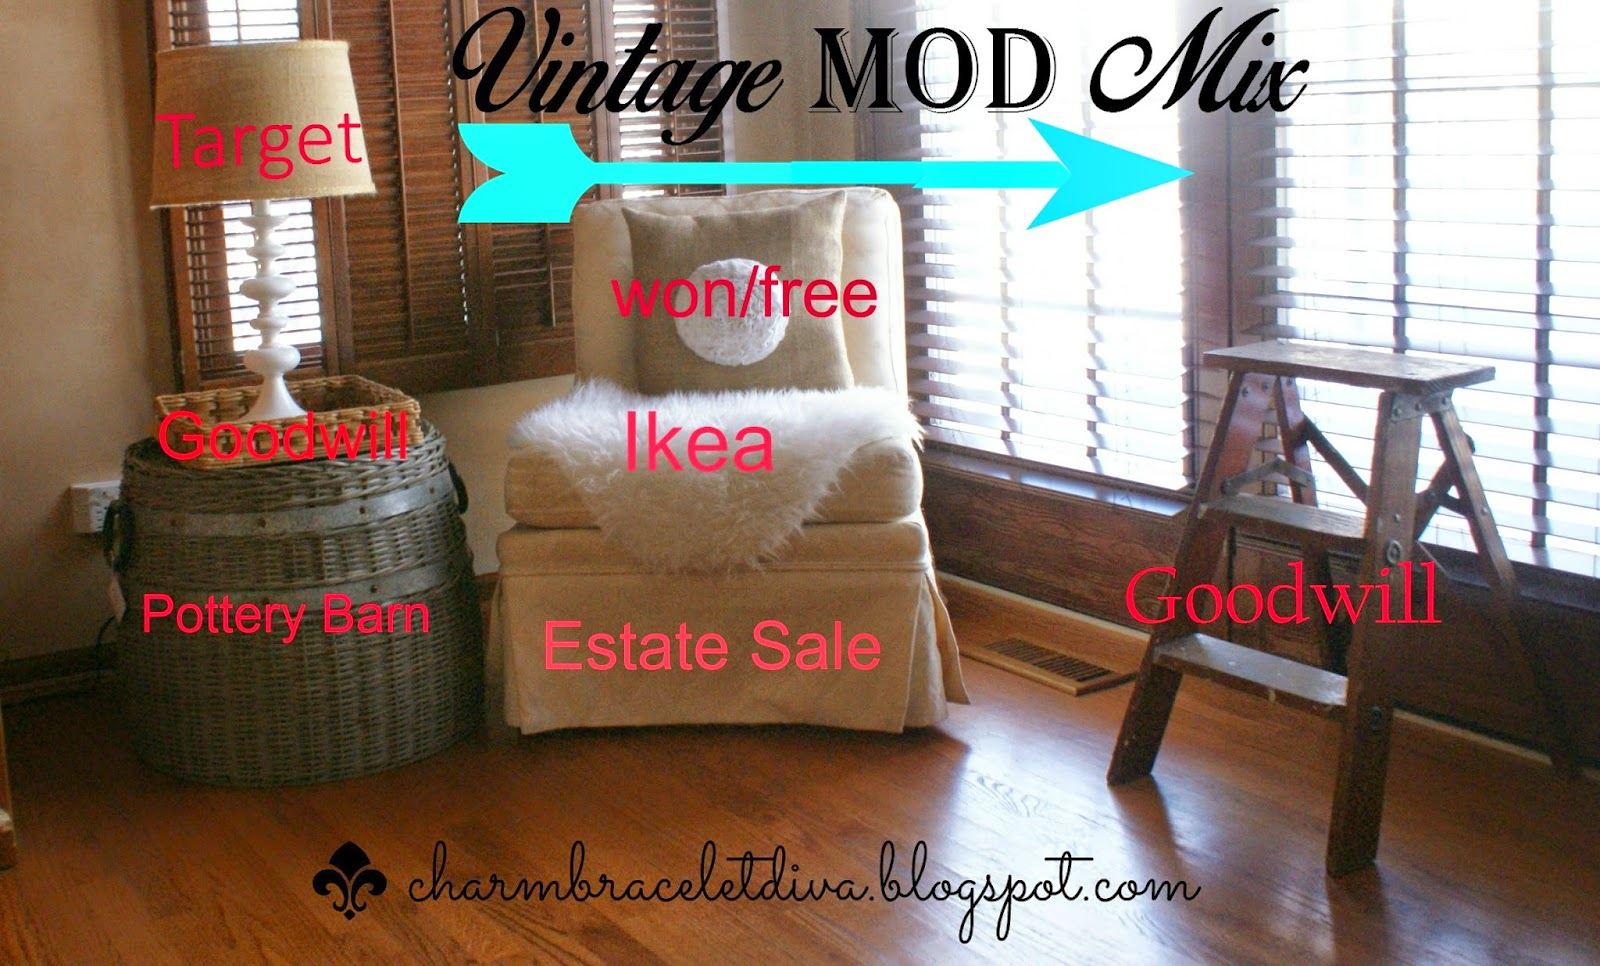 Vintage mod mix of furniture and accessories